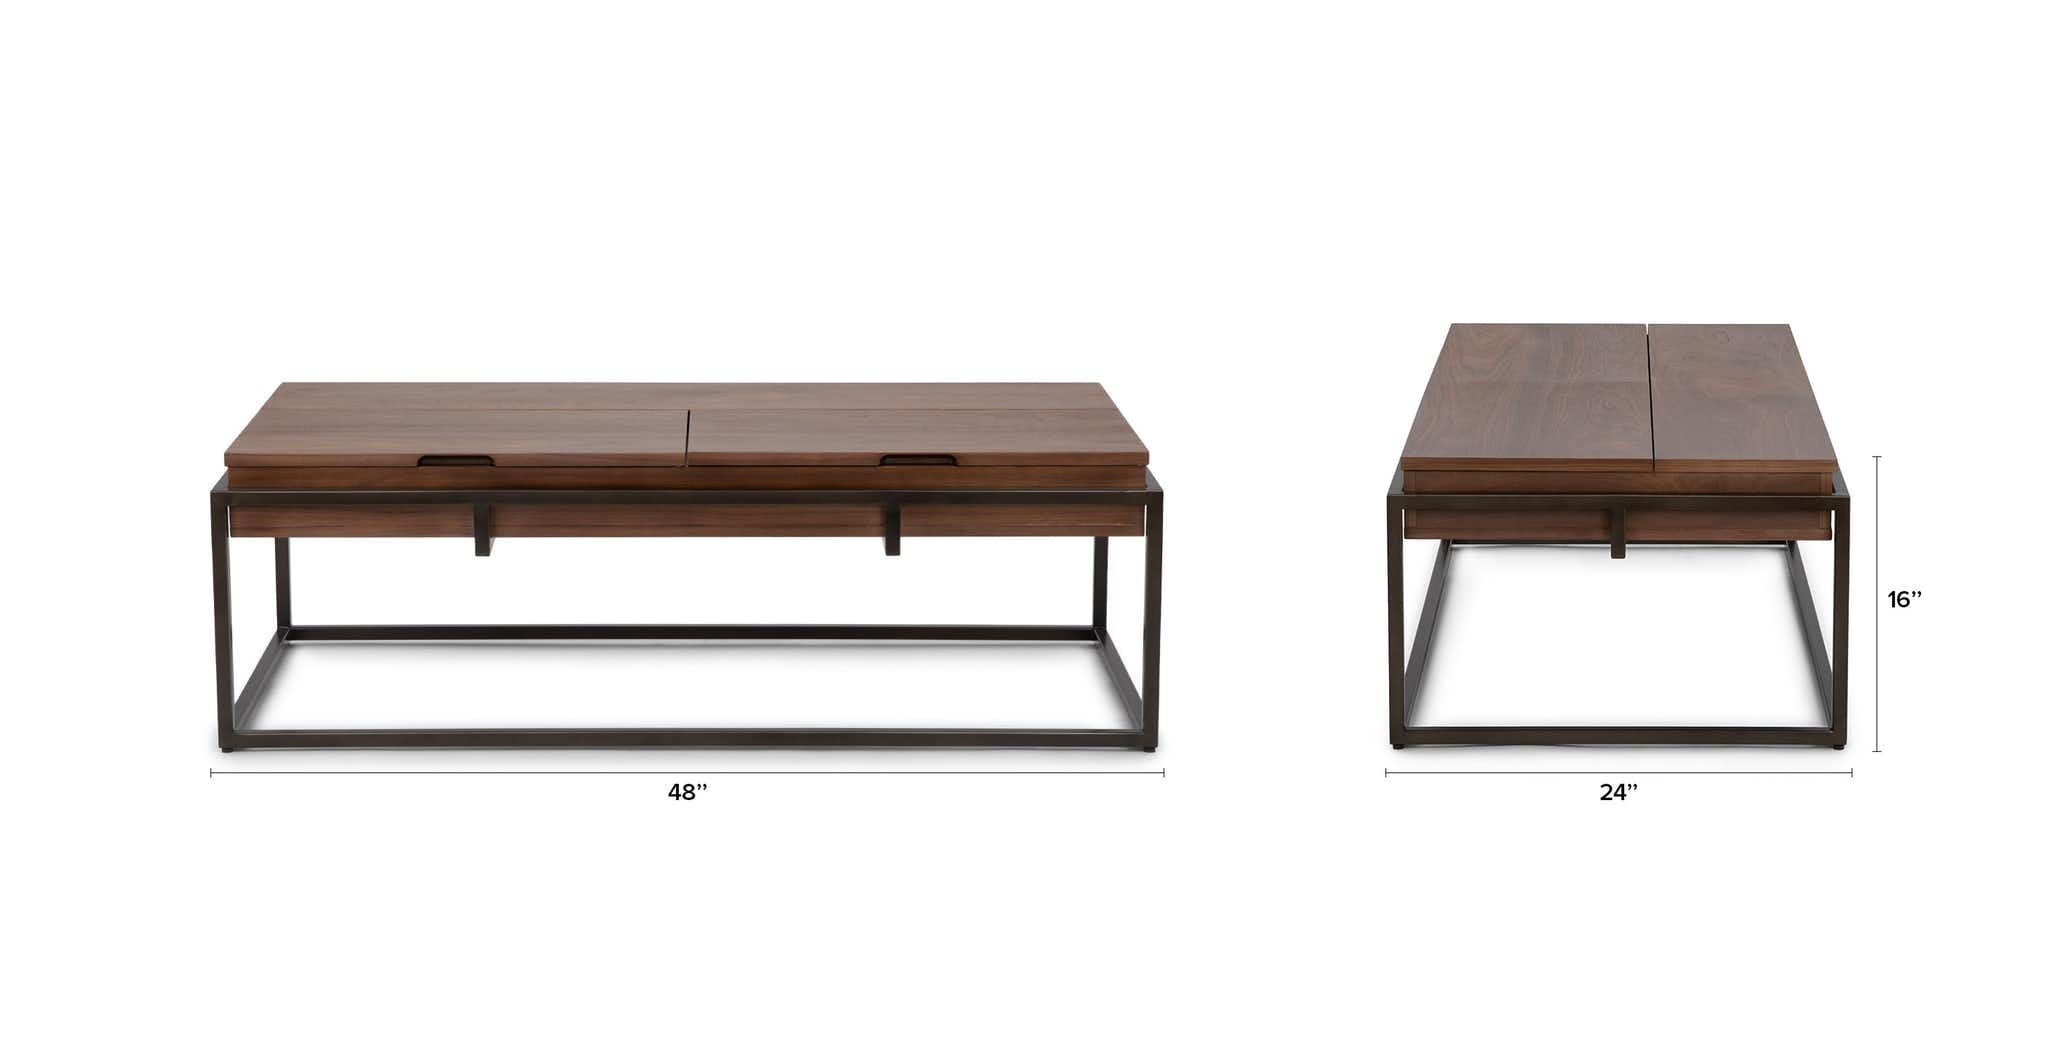 The Oscuro Coffee Table Features Natural Wood Grain Juxtaposed Against Brushed Metal For Coffee Table Mid Century Modern Coffee Table Coffee Table With Storage [ 1063 x 2048 Pixel ]